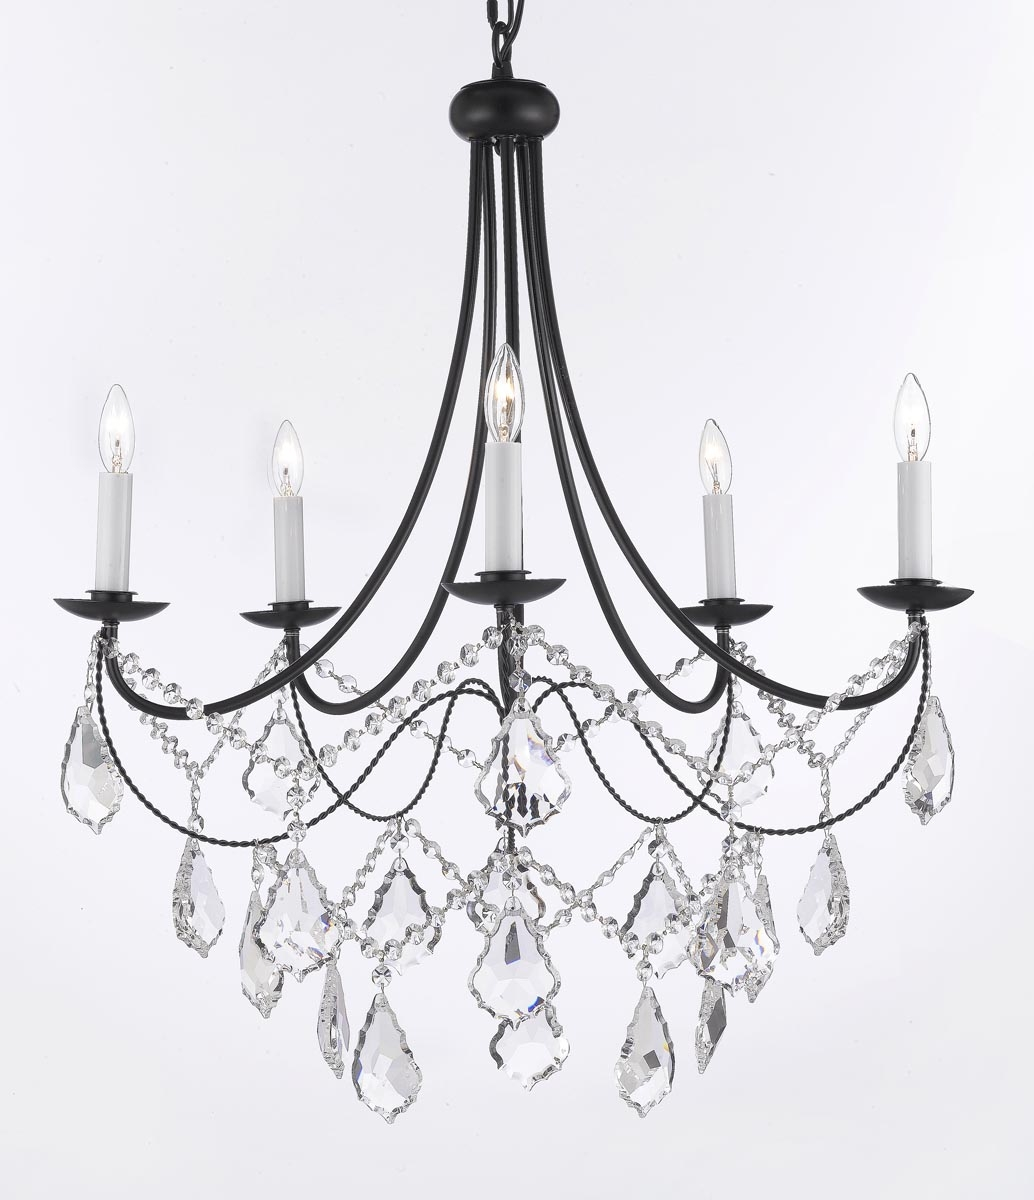 A7 B124035sw Gallery Wrought With Crystal Wrought Iron Throughout Wrought Iron Chandelier (Image 2 of 15)